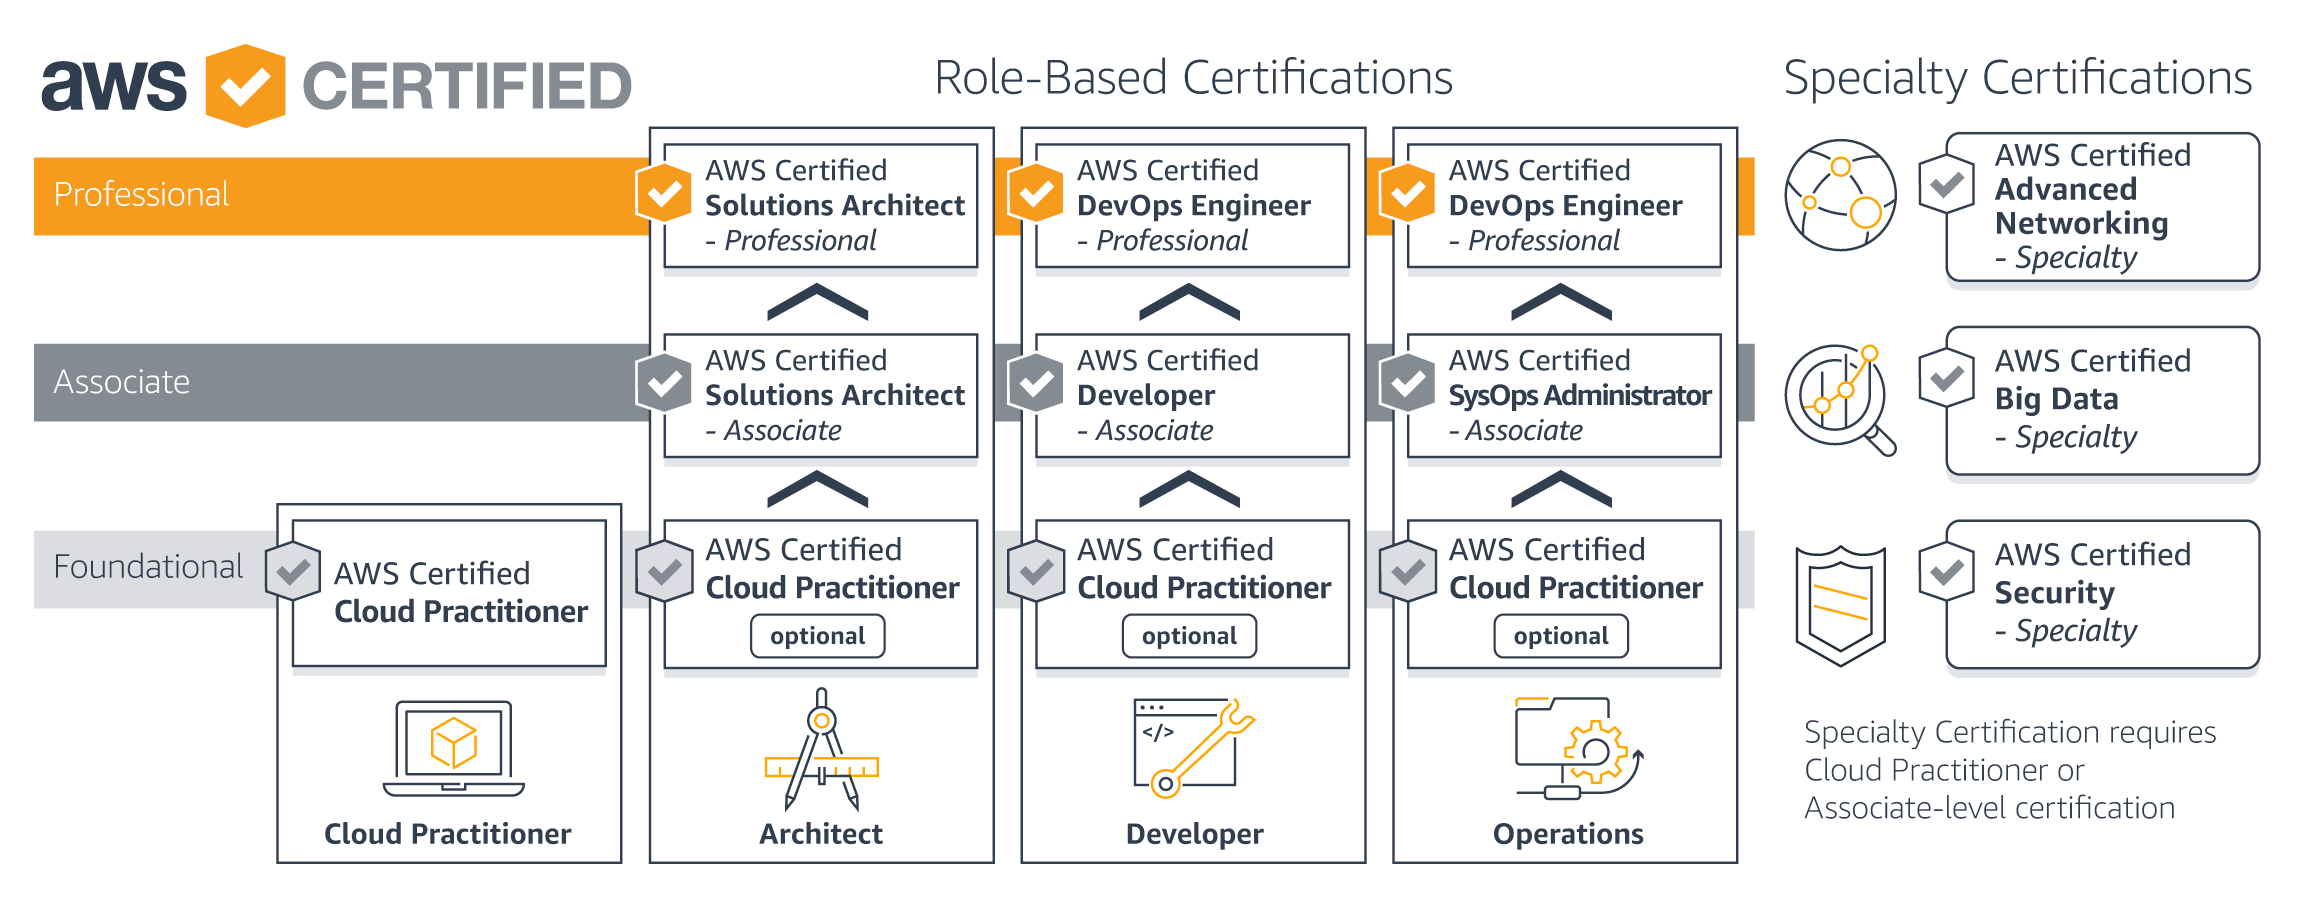 Are Aws Certifications Hard